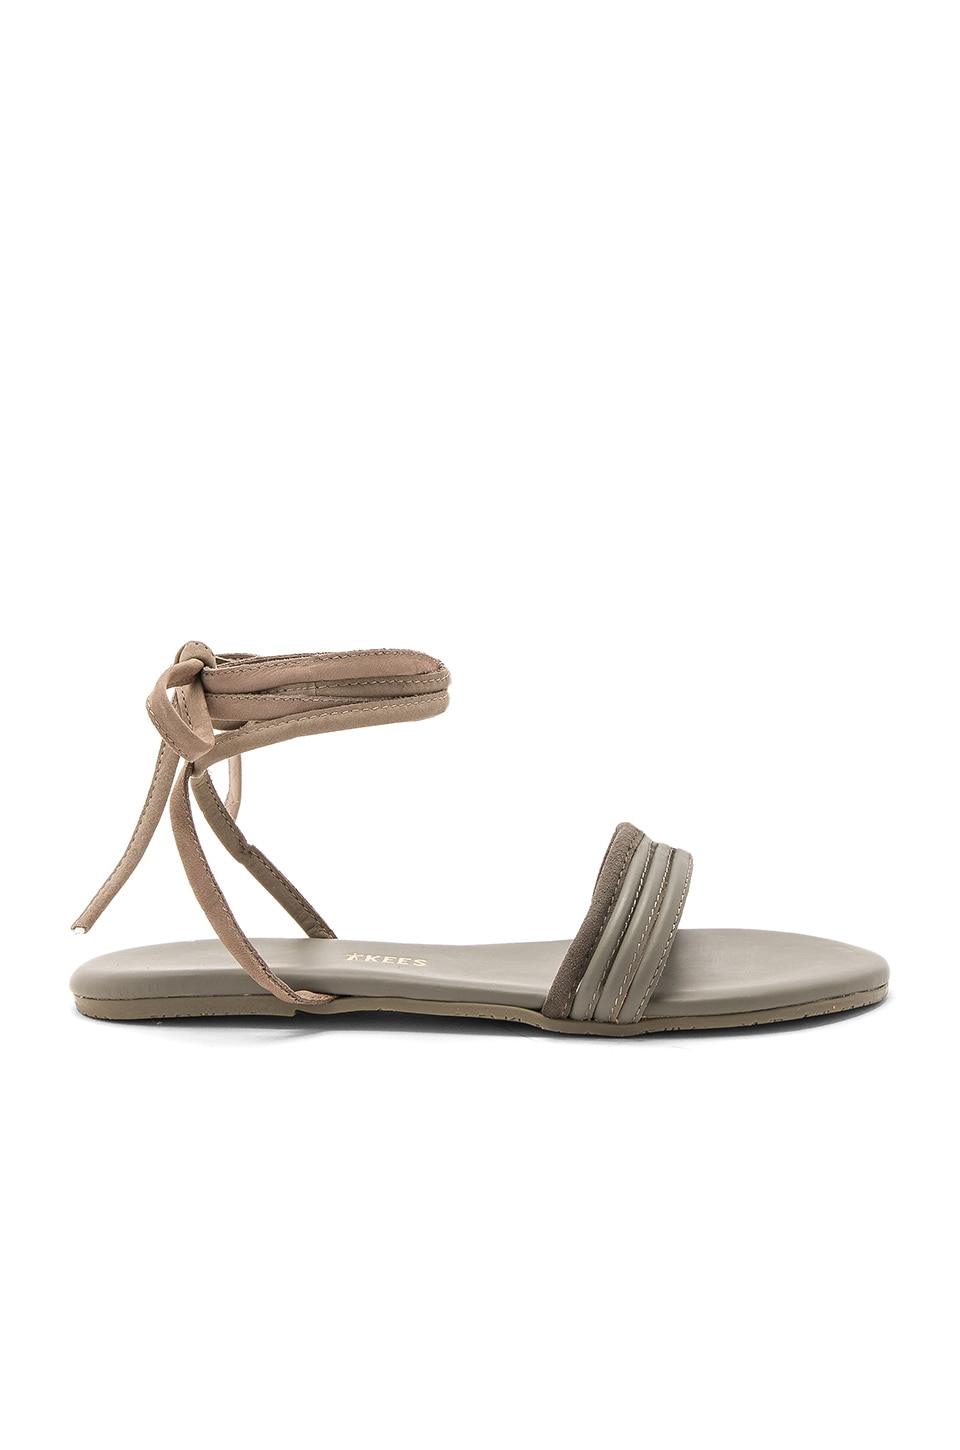 TKEES Olly Sandal in Seabird